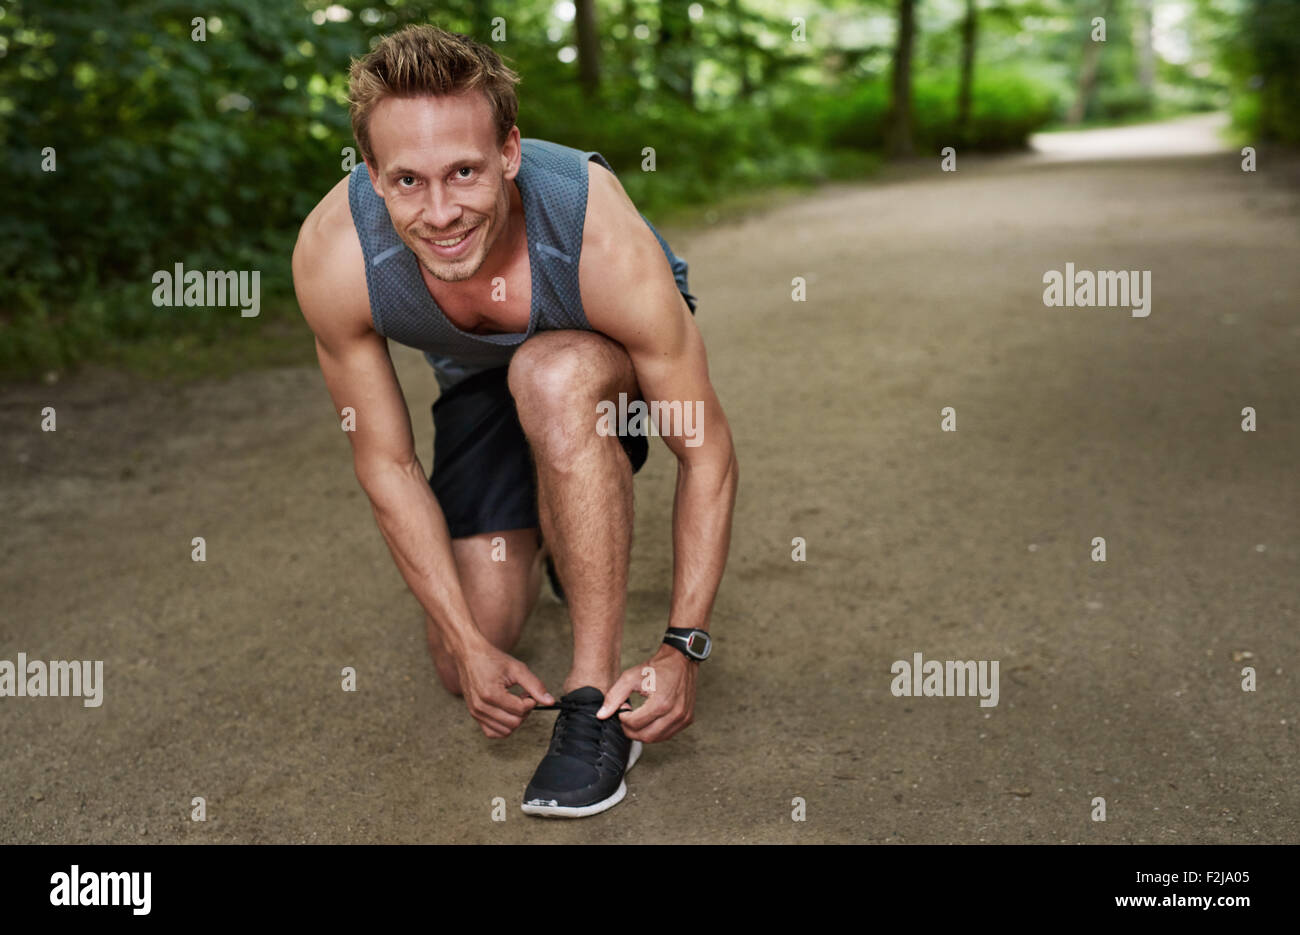 Healthy Muscular Man Smiling at the Camera While Fixing his Shoelace at the Park. - Stock Image